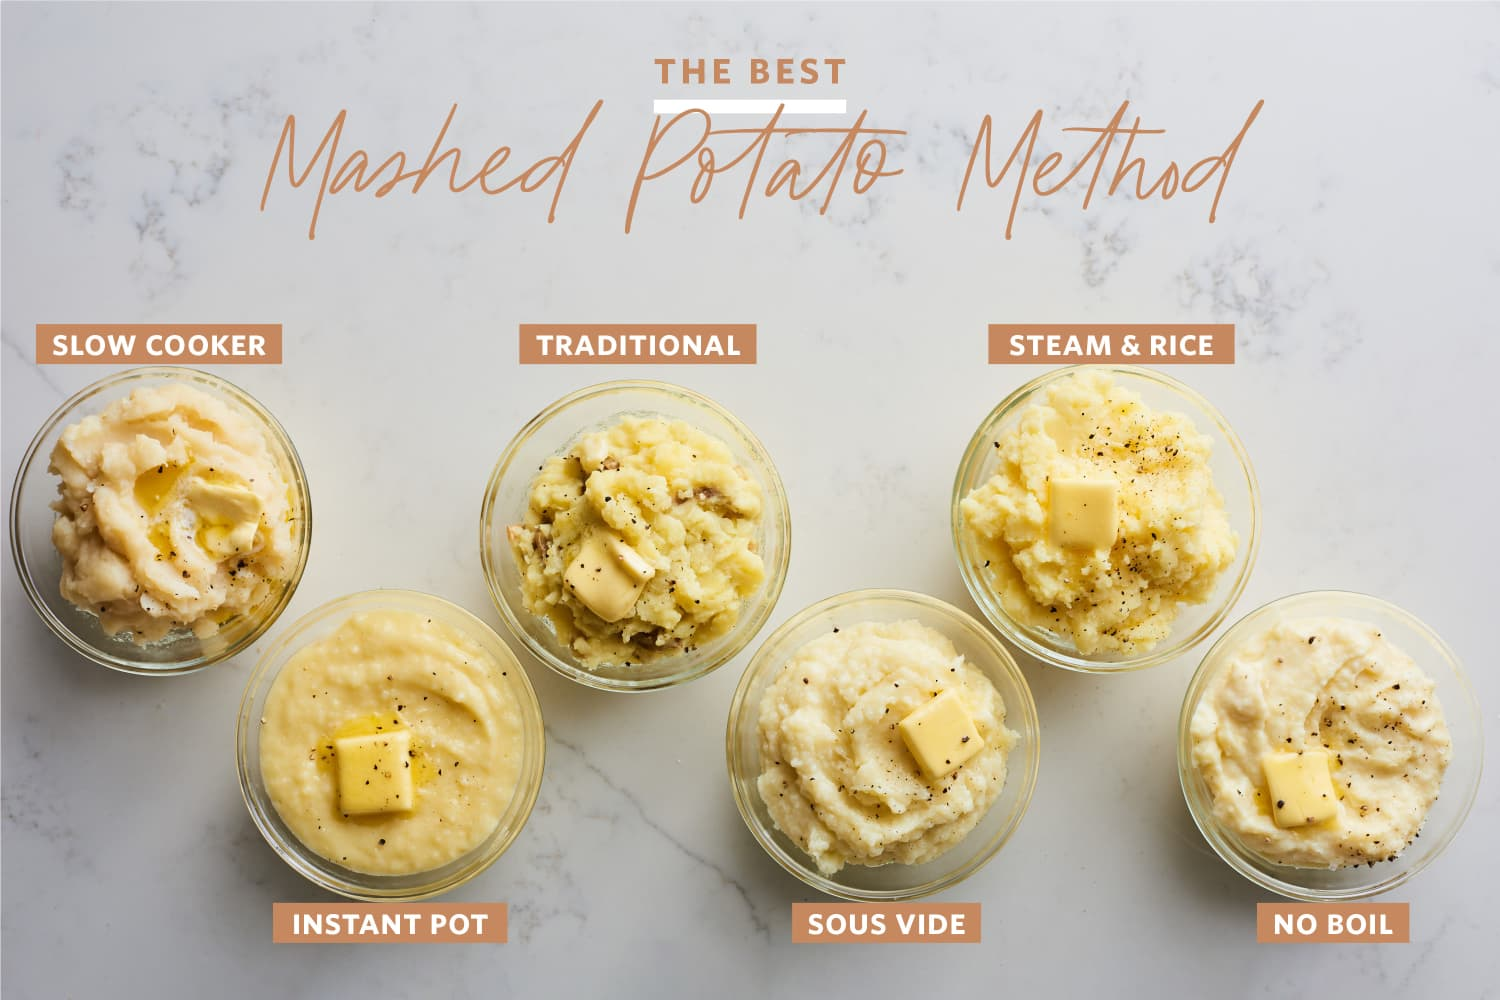 The Best Mashed Potato Method